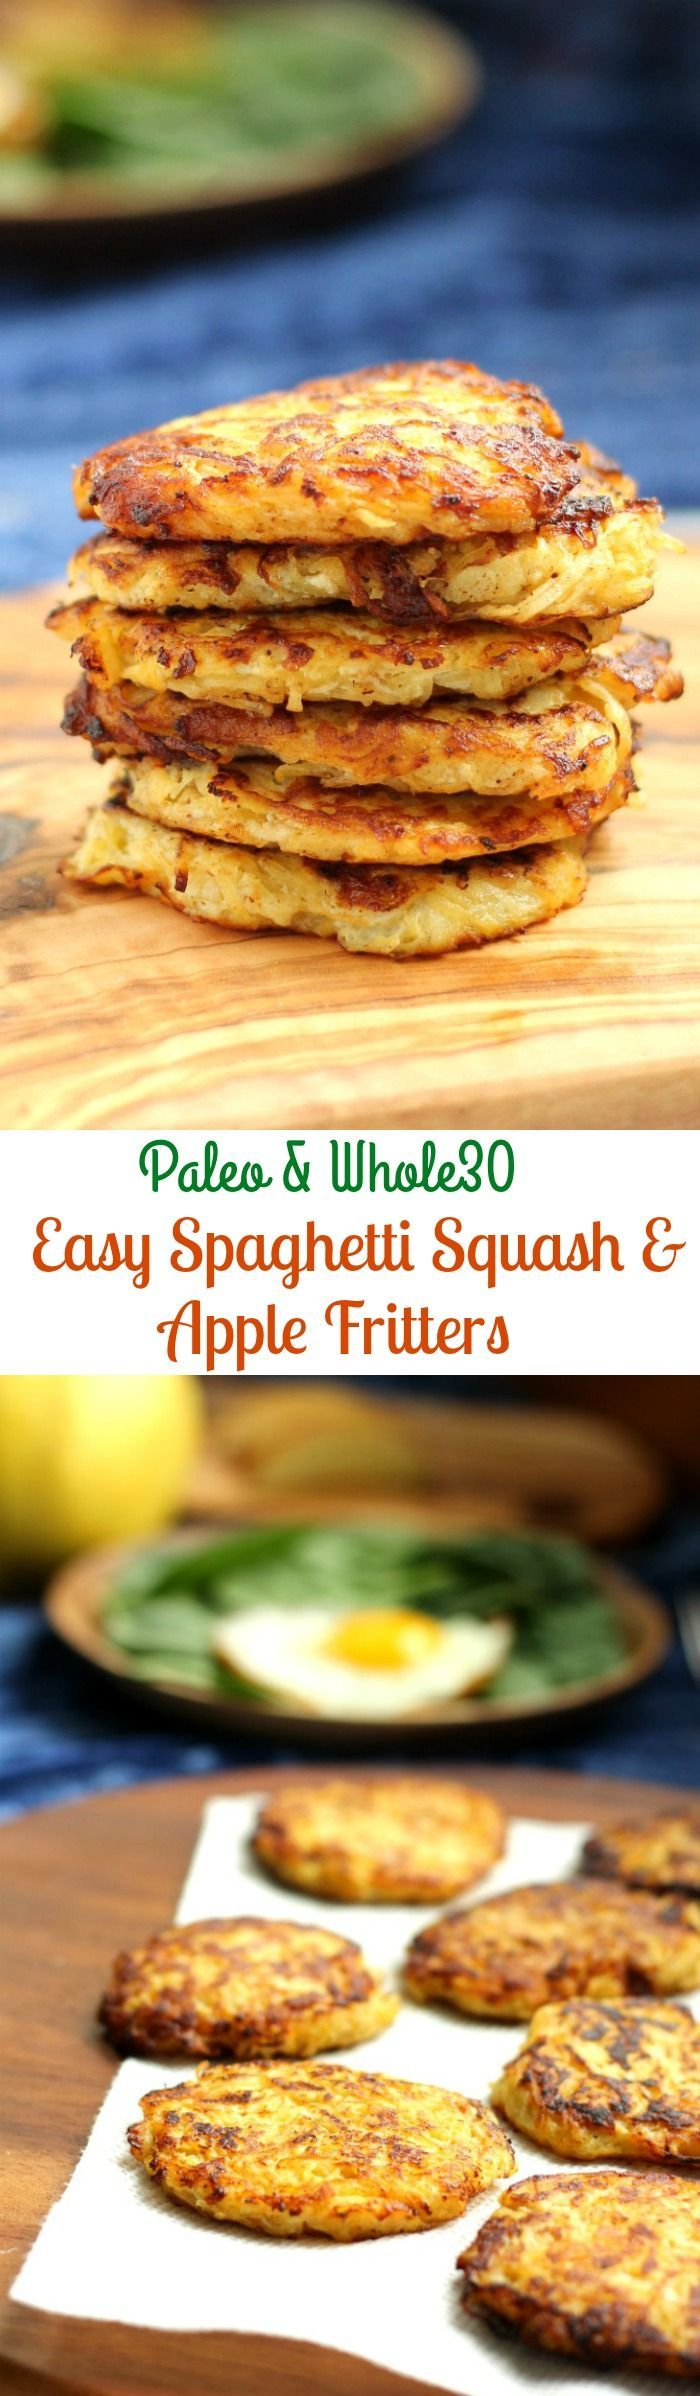 Spaghetti squash and apple fritters that are Paleo and Whole30 friendly, grain free and couldn't be easier!